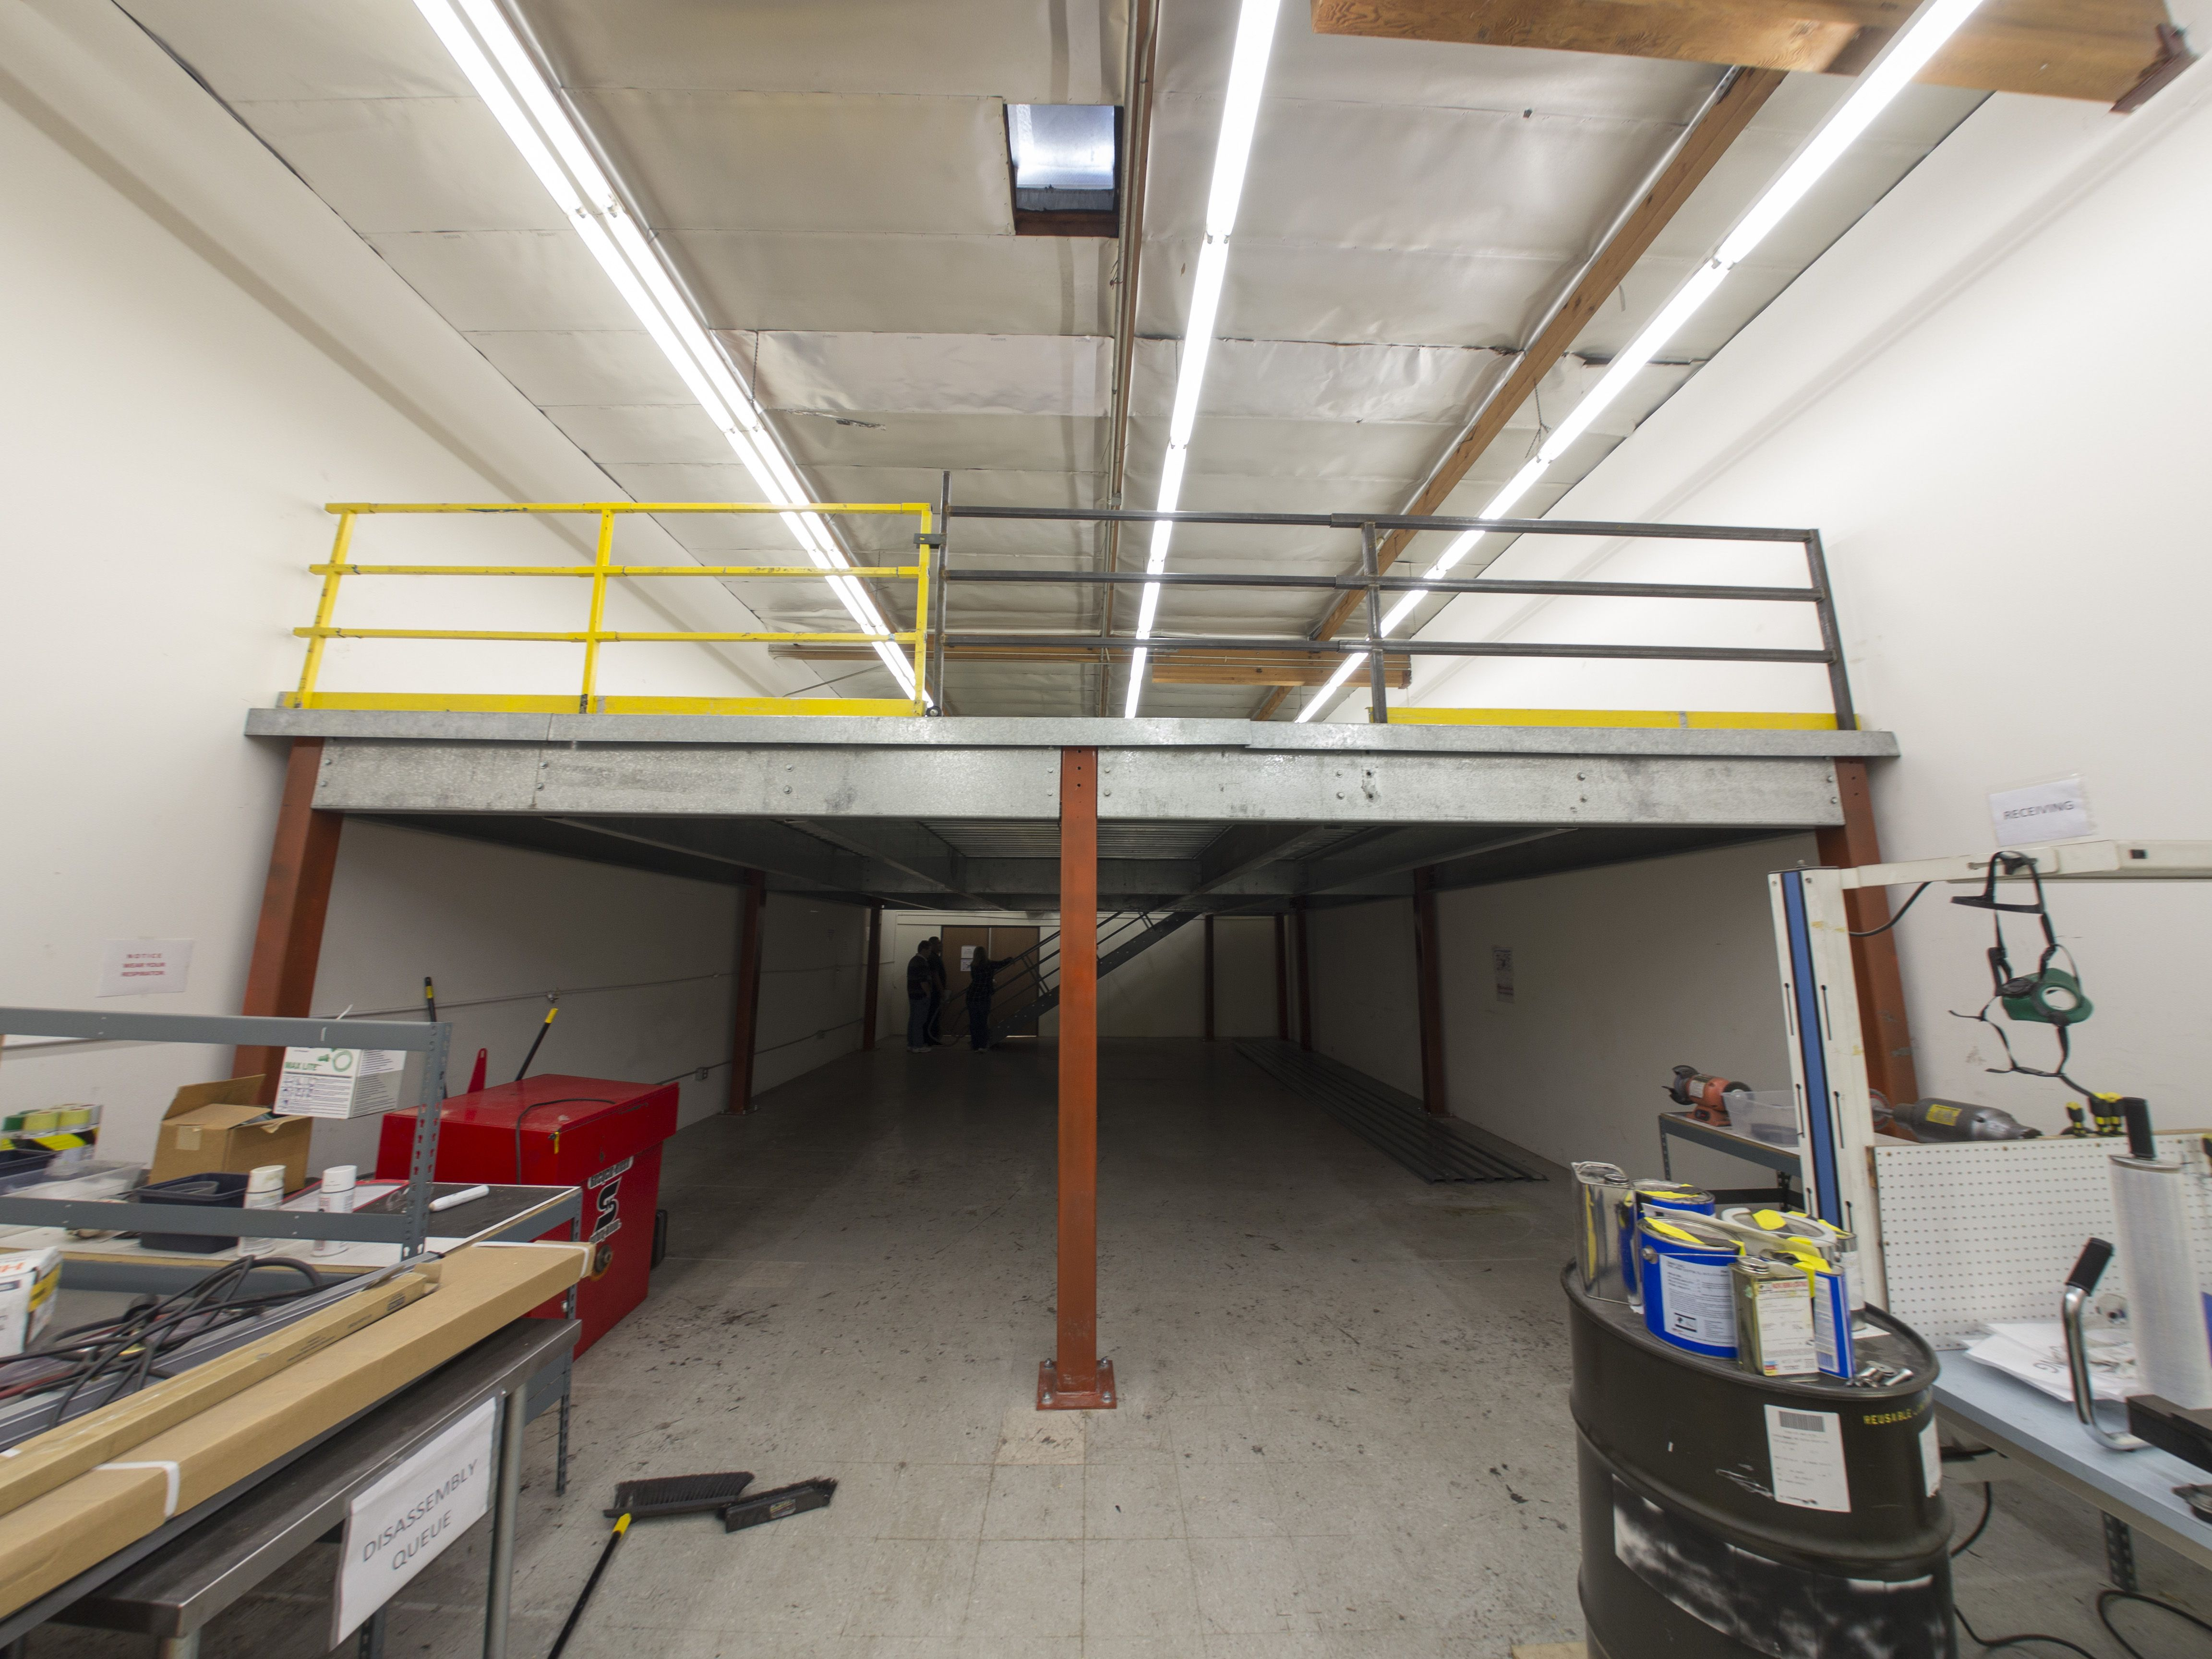 mezzanine office. Mezzanine Flooring Can Create Additional Floors Of Space For A Variety Different Uses Including Storage Or Extra Office Space.